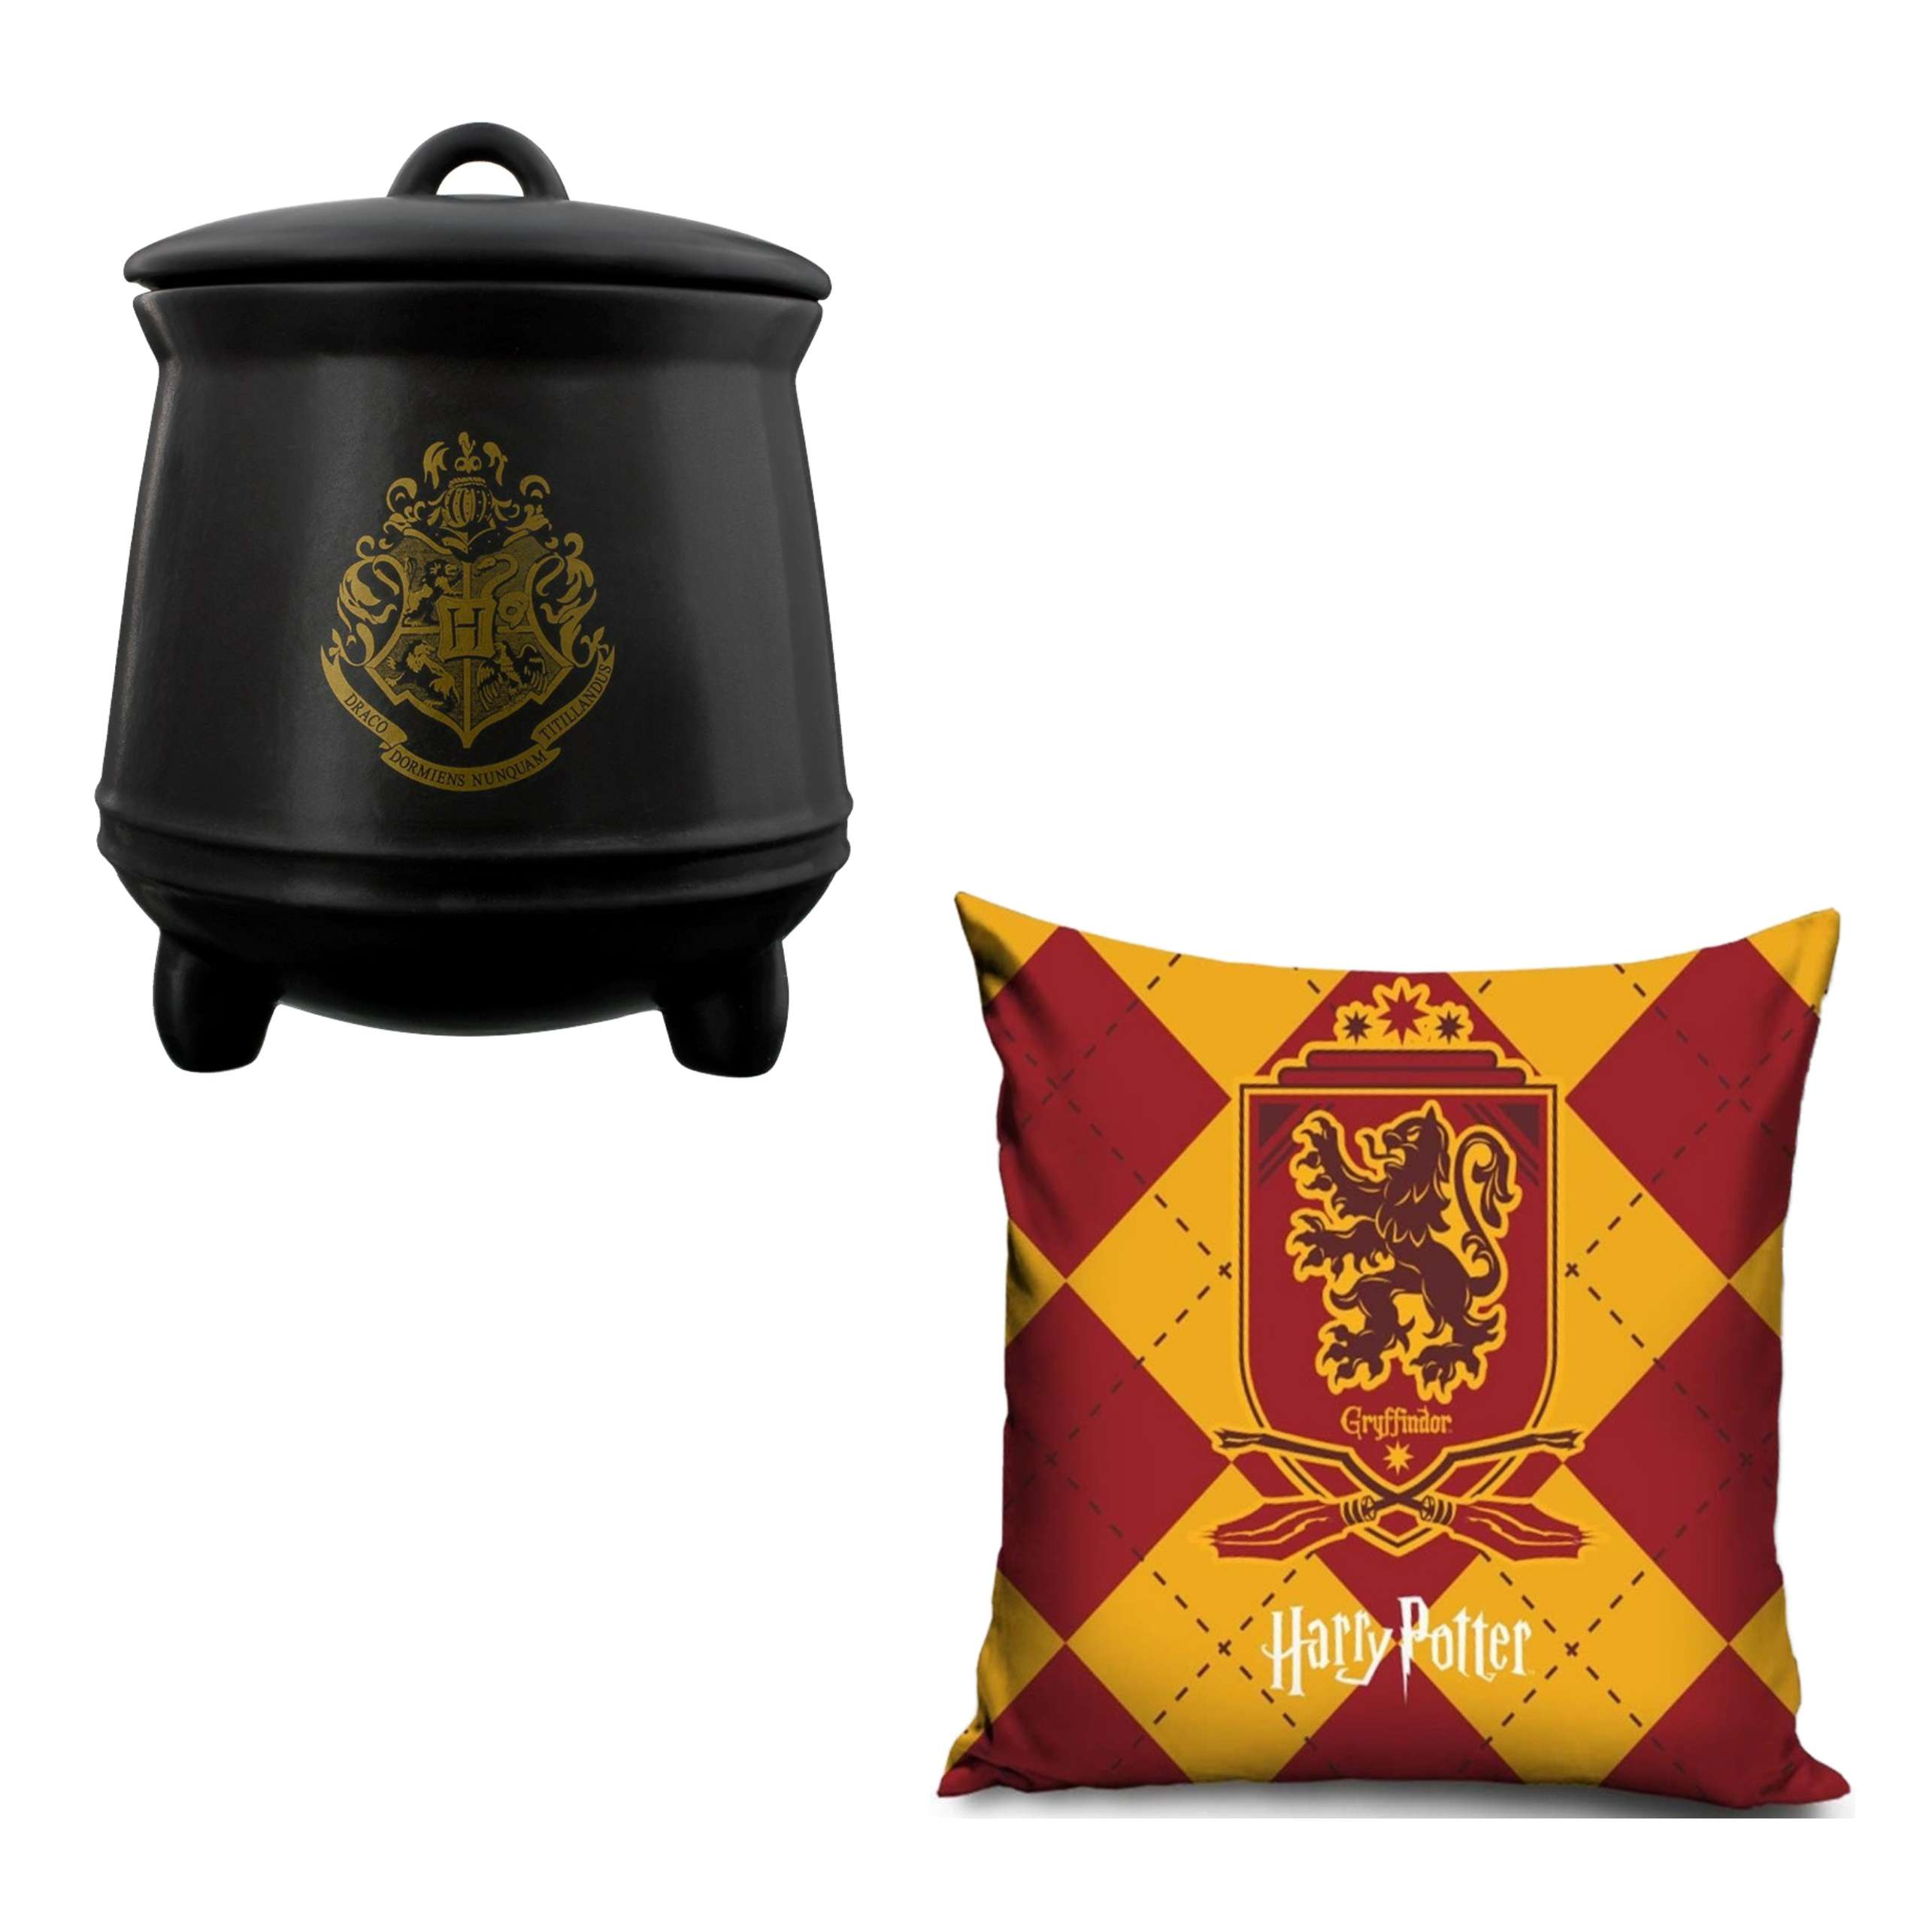 Harry Potter Griffindor Pillowcase And Storage Jar Set